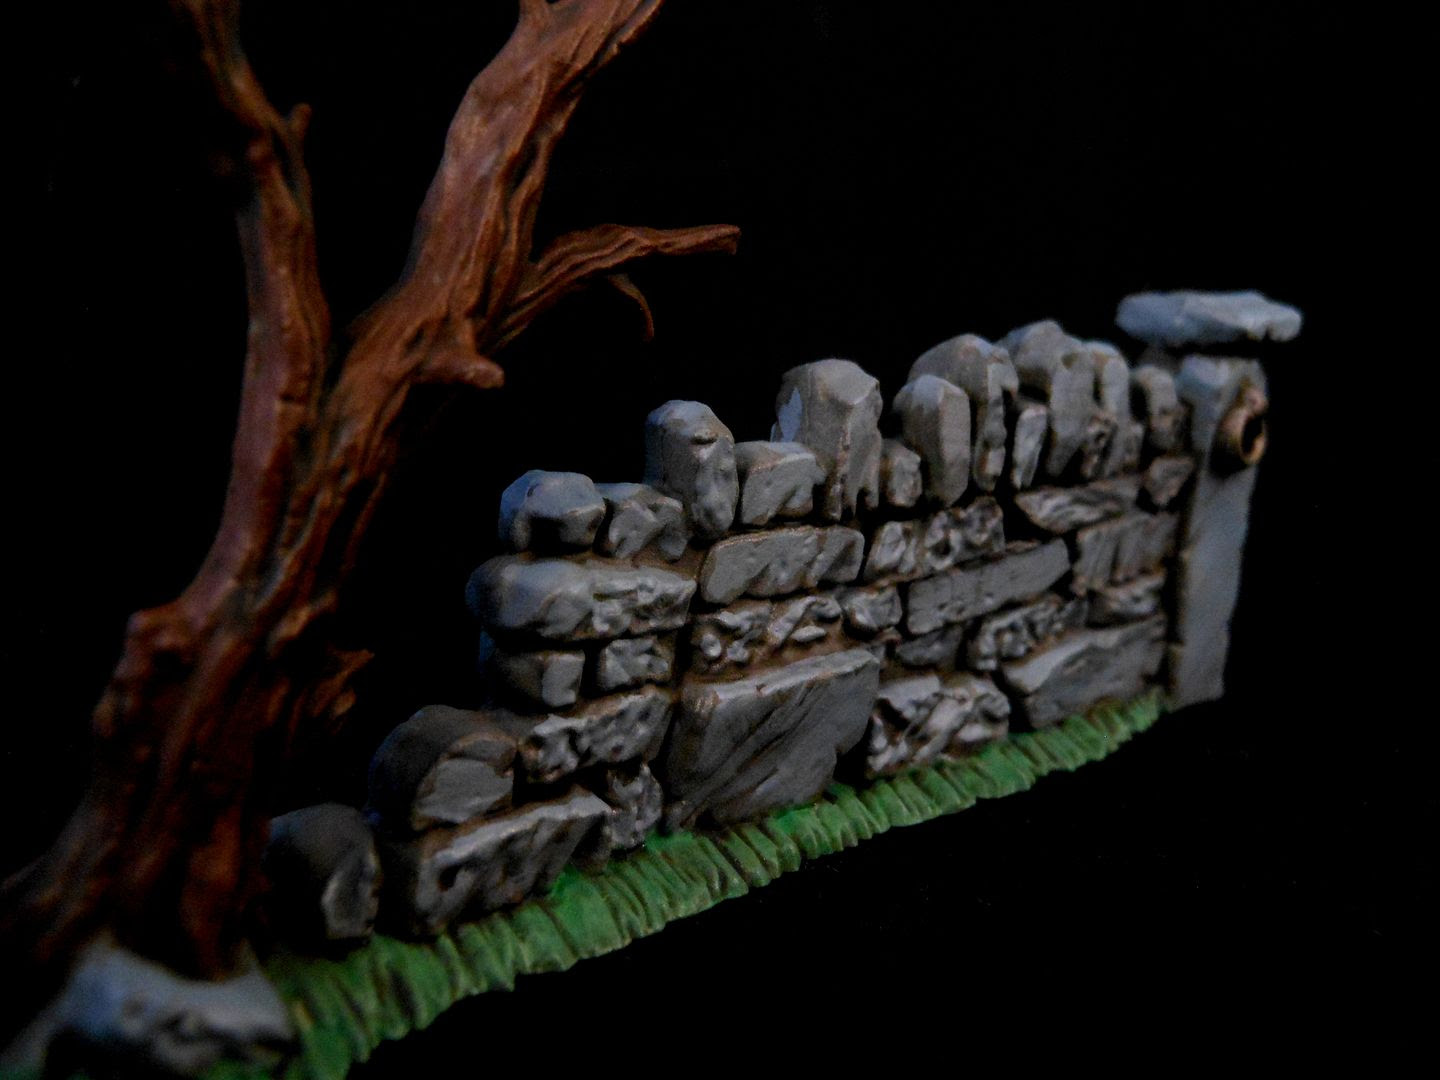 A close-up view of a Games Workshop wall, painted with washes to bring out the amazing details.